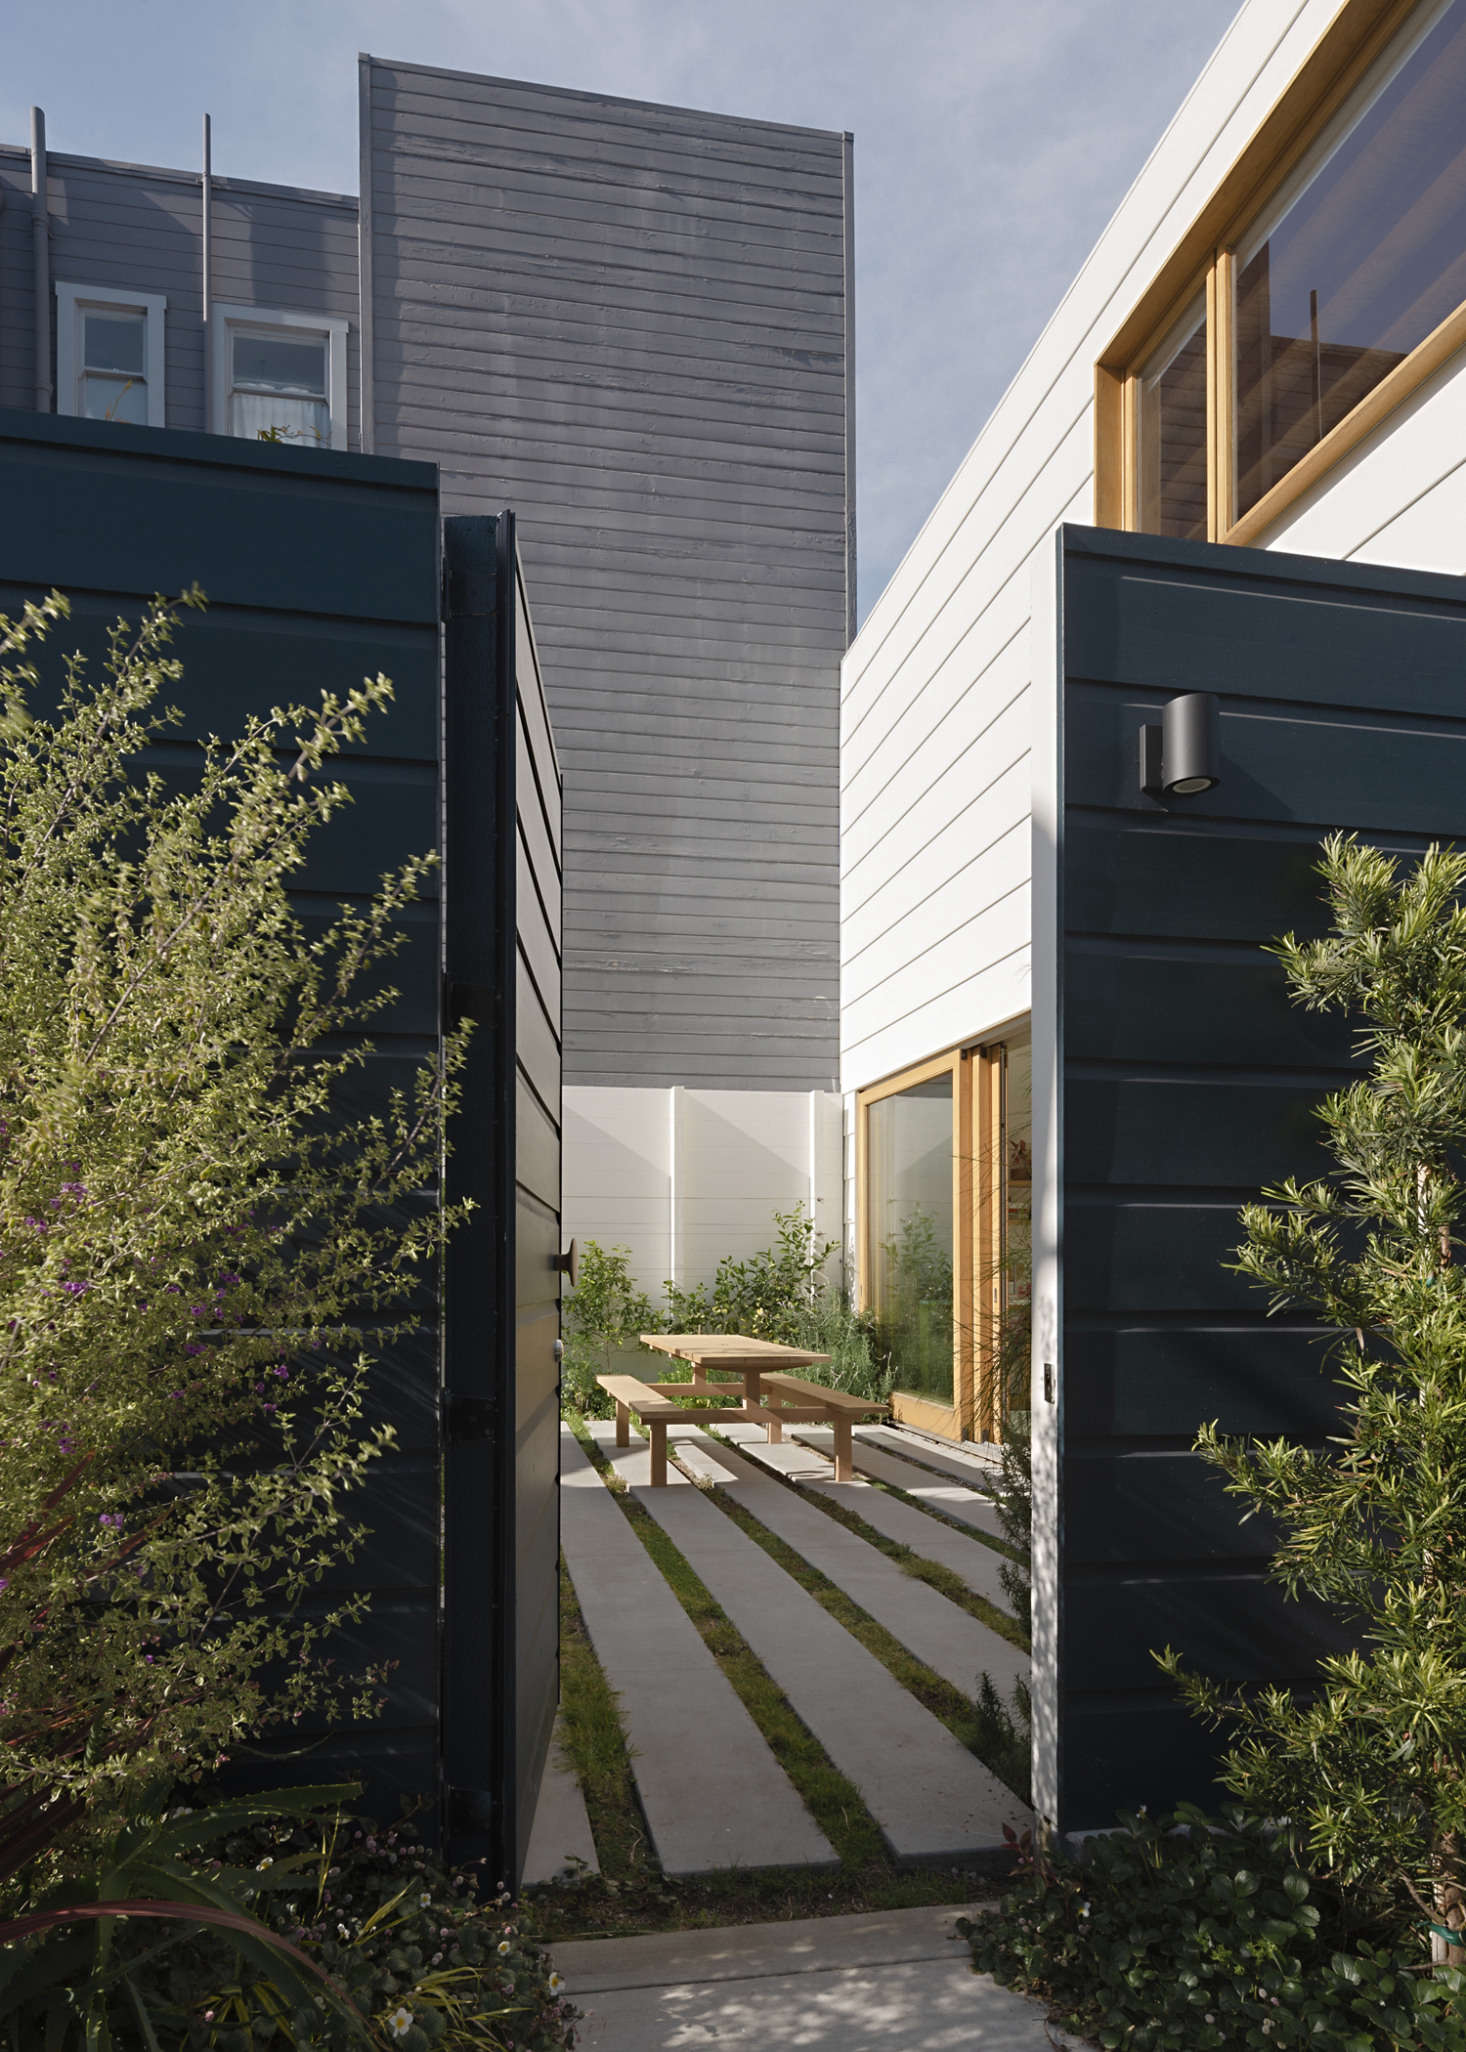 """The street entrance opens into the private courtyard. """"The custom-profile painted siding echoes the typical horizontal lap siding seen throughout the neighborhood while playing with scale,"""" says Ryan."""